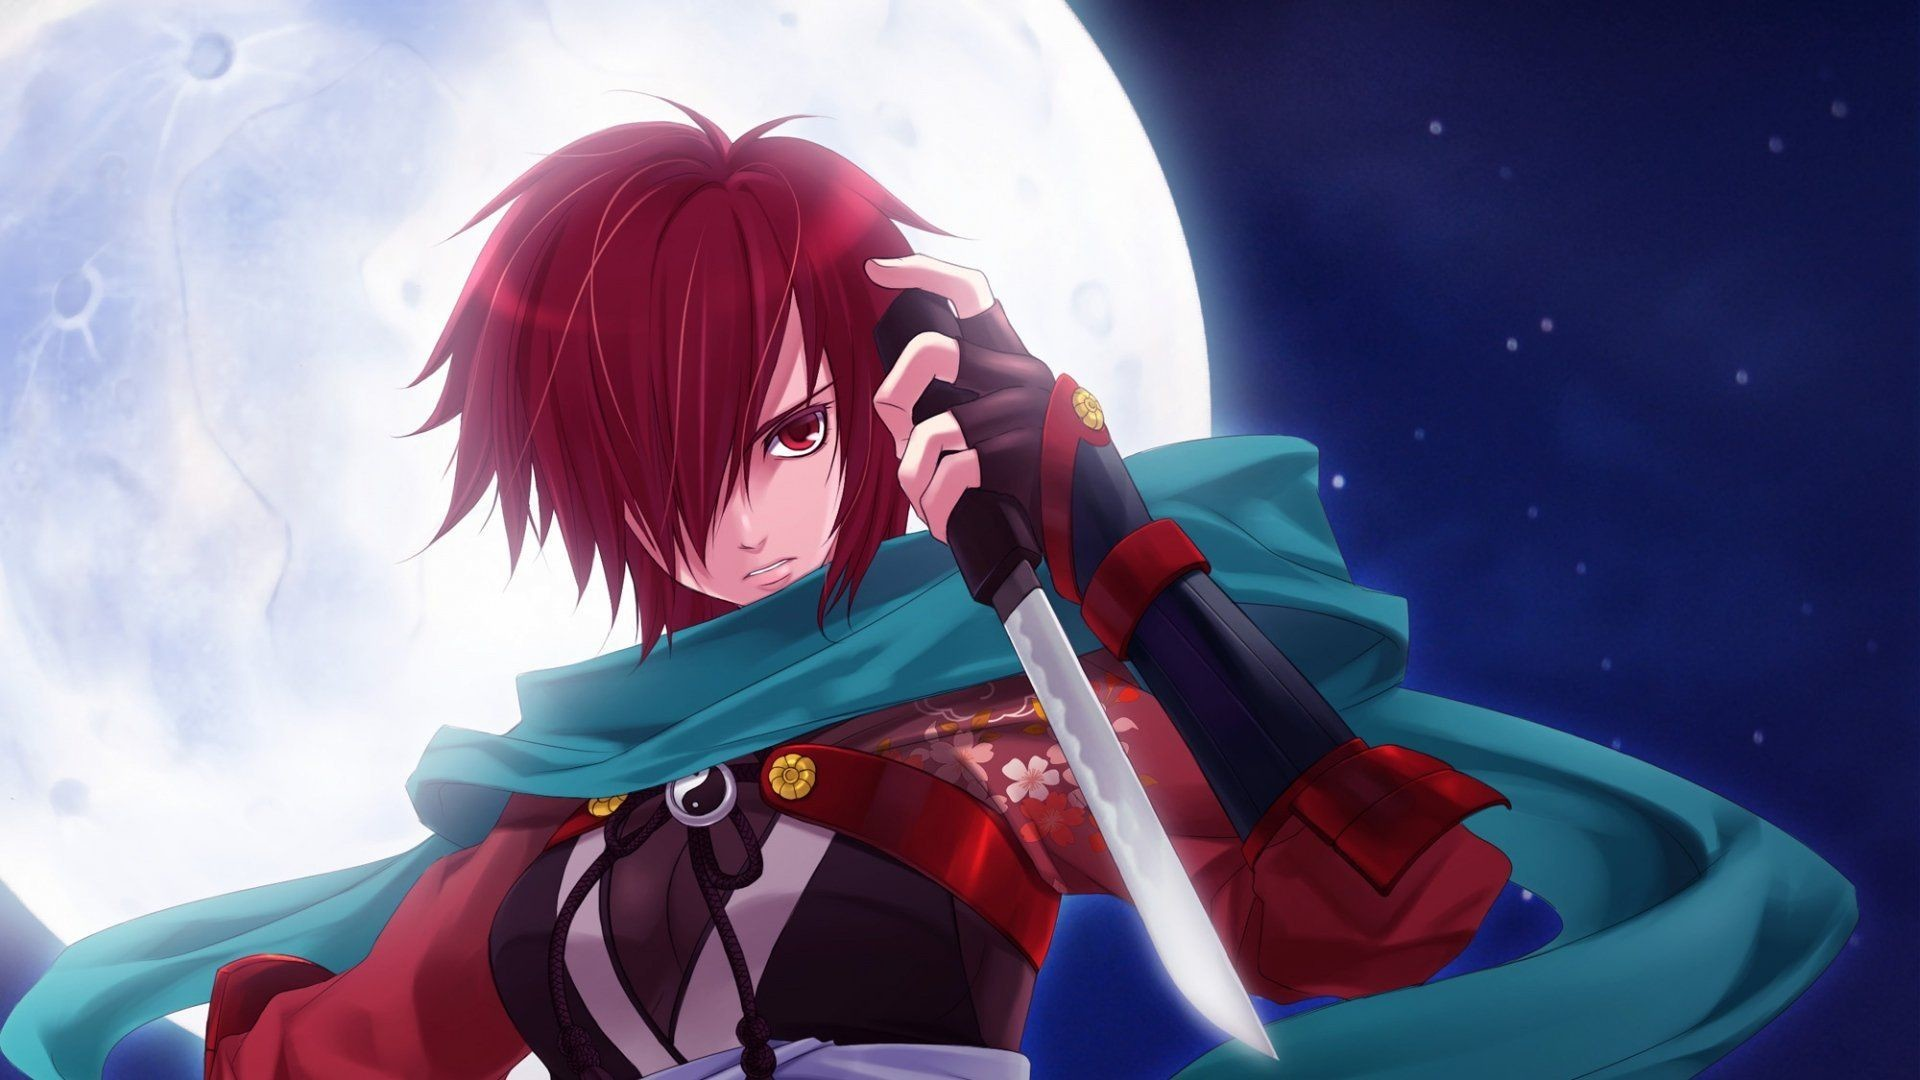 Res: 1920x1080, Anime Ninja Wallpaper Images Pictures #01860s6y – Yoanu